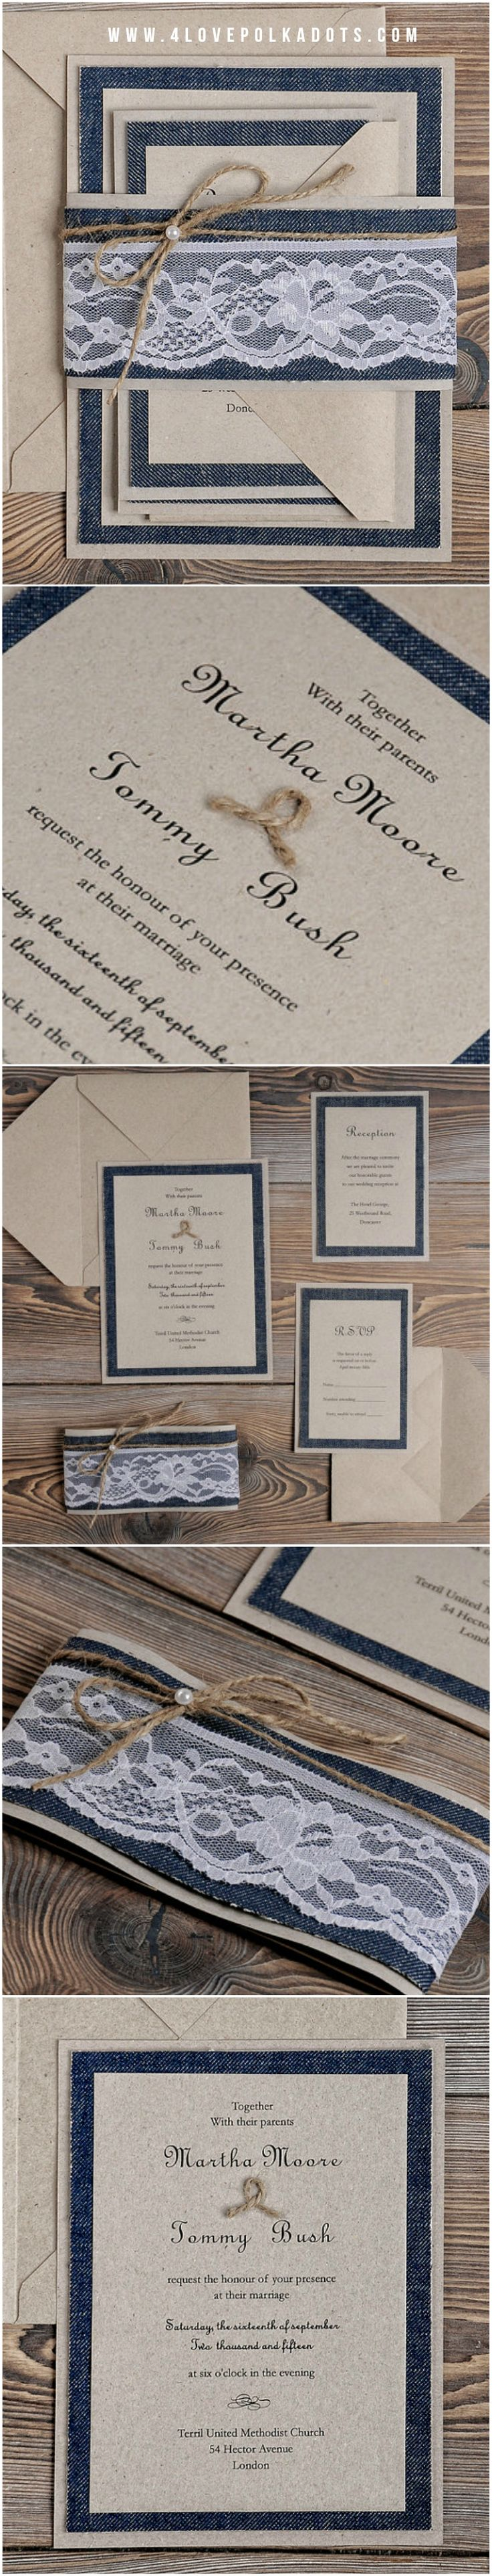 how to word evening wedding reception invitations%0A Jeans  u     Lace Wedding Invitation  eco kraft paper  lace and twine